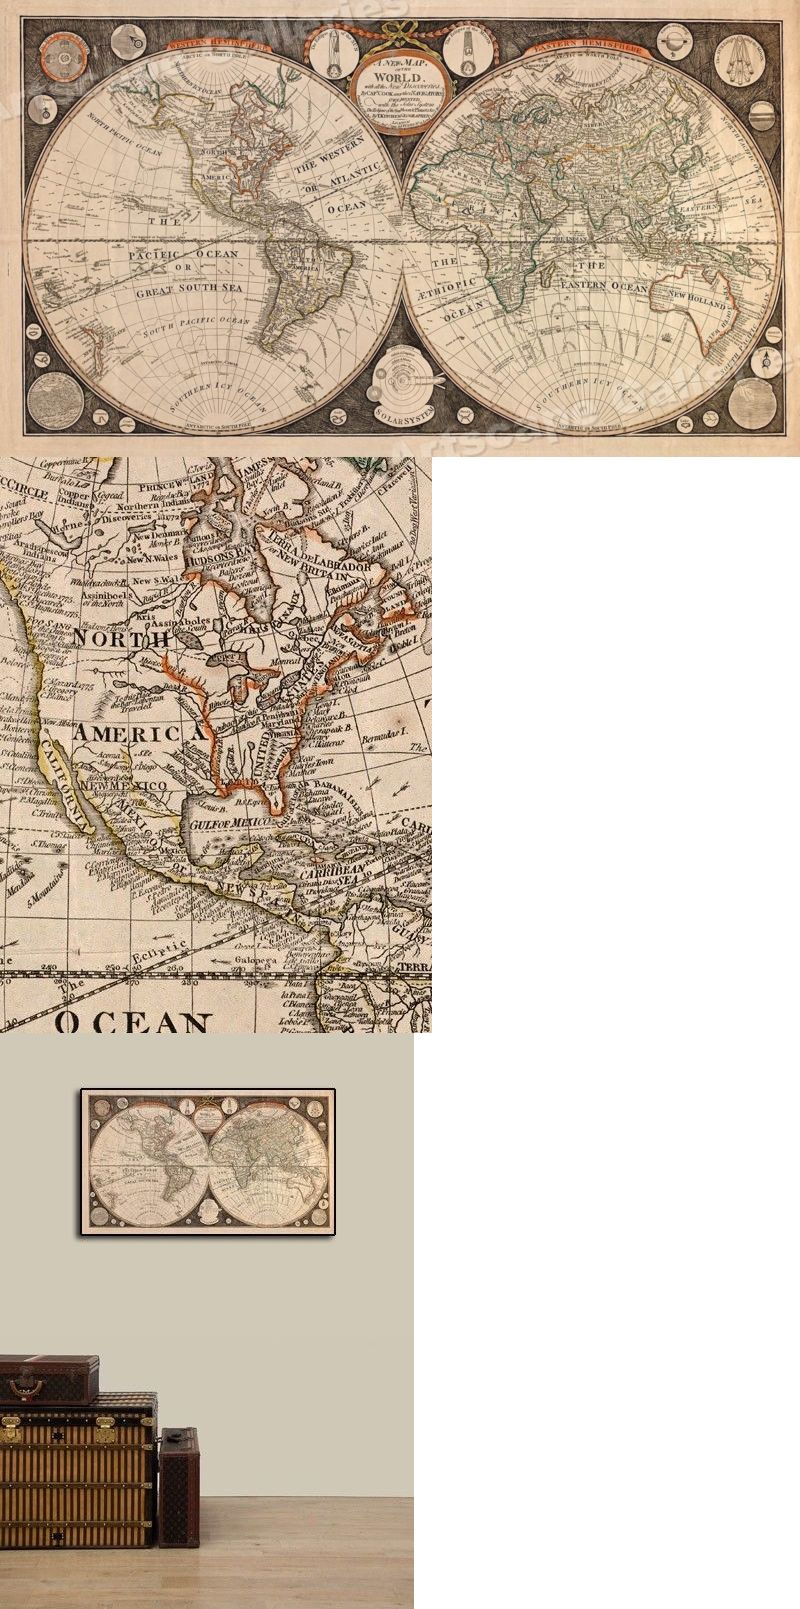 1799 Historic World Vintage Map Poster Discoveries By Capt Cook 14x24 Ebay Vintage Map Map Poster Historical